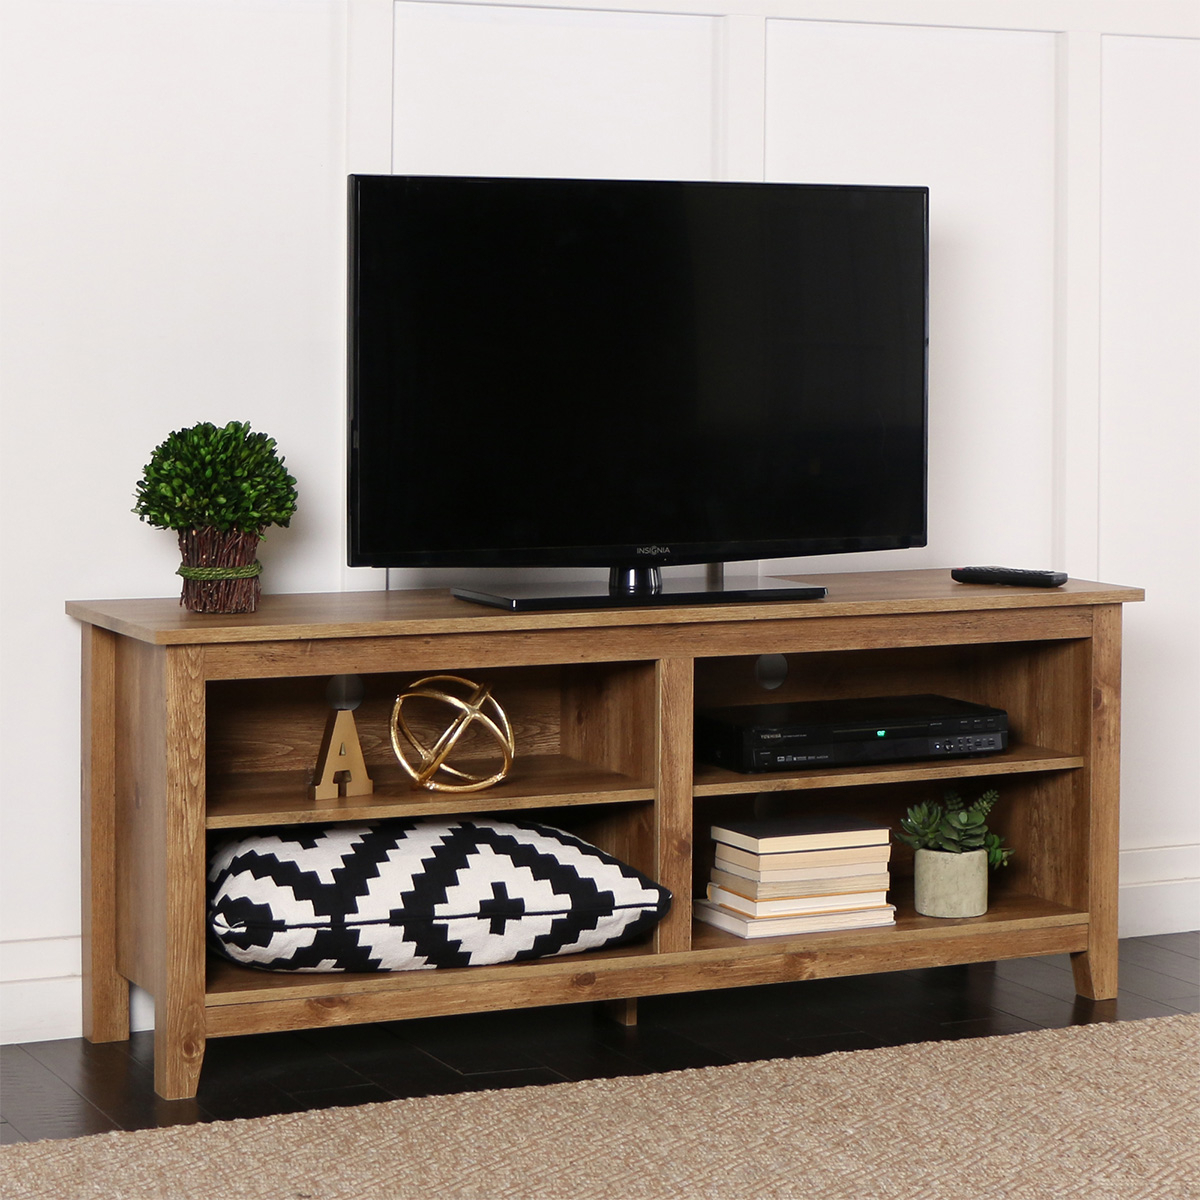 14 Inch Deep Tv Stand | Tyres2c Regarding Sinclair Grey 74 Inch Tv Stands (View 22 of 30)